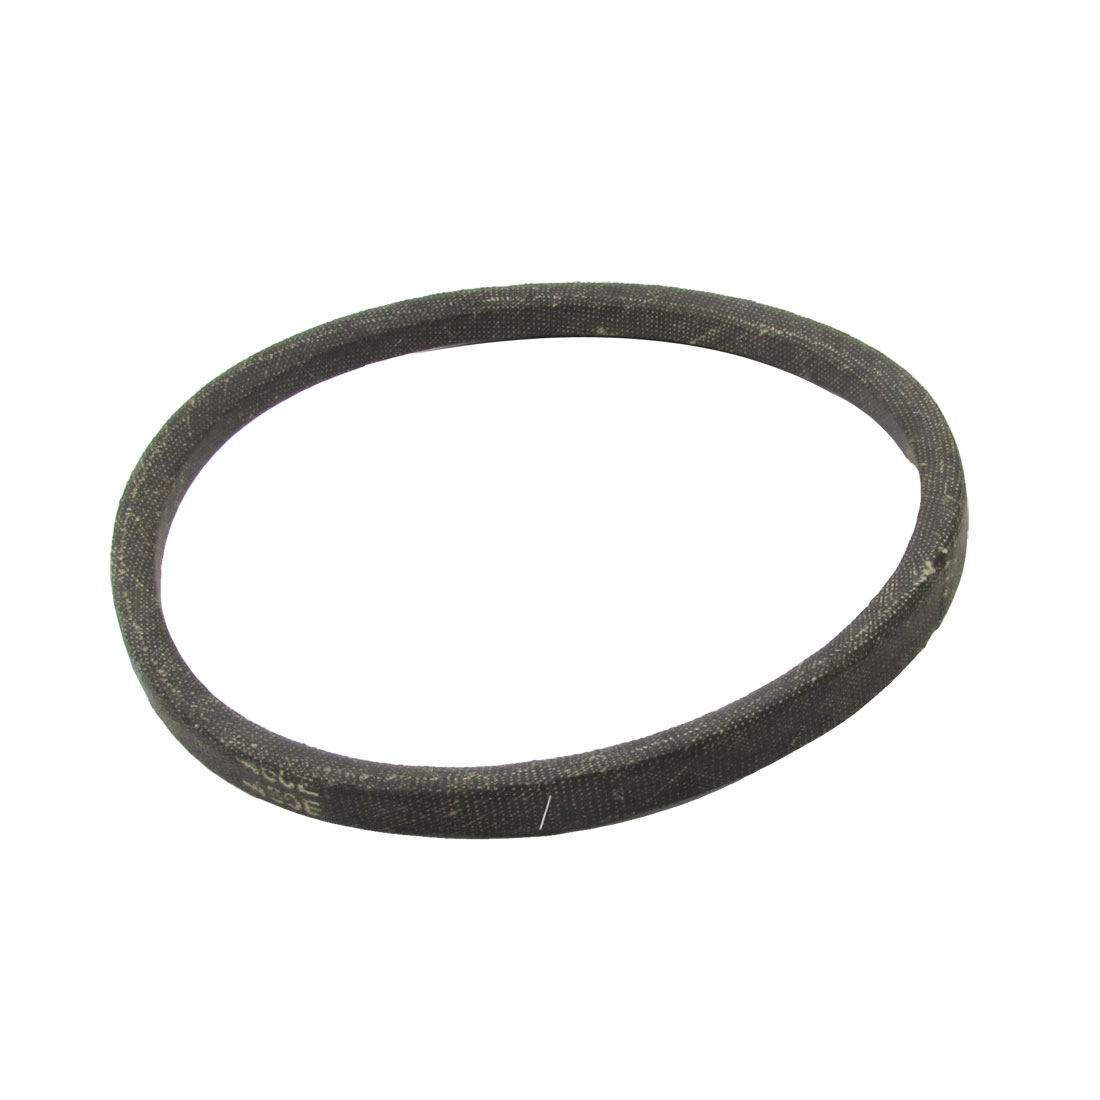 Washer Washing Machine Replacement A-460E 460mm Inner Girth Rubber Belt